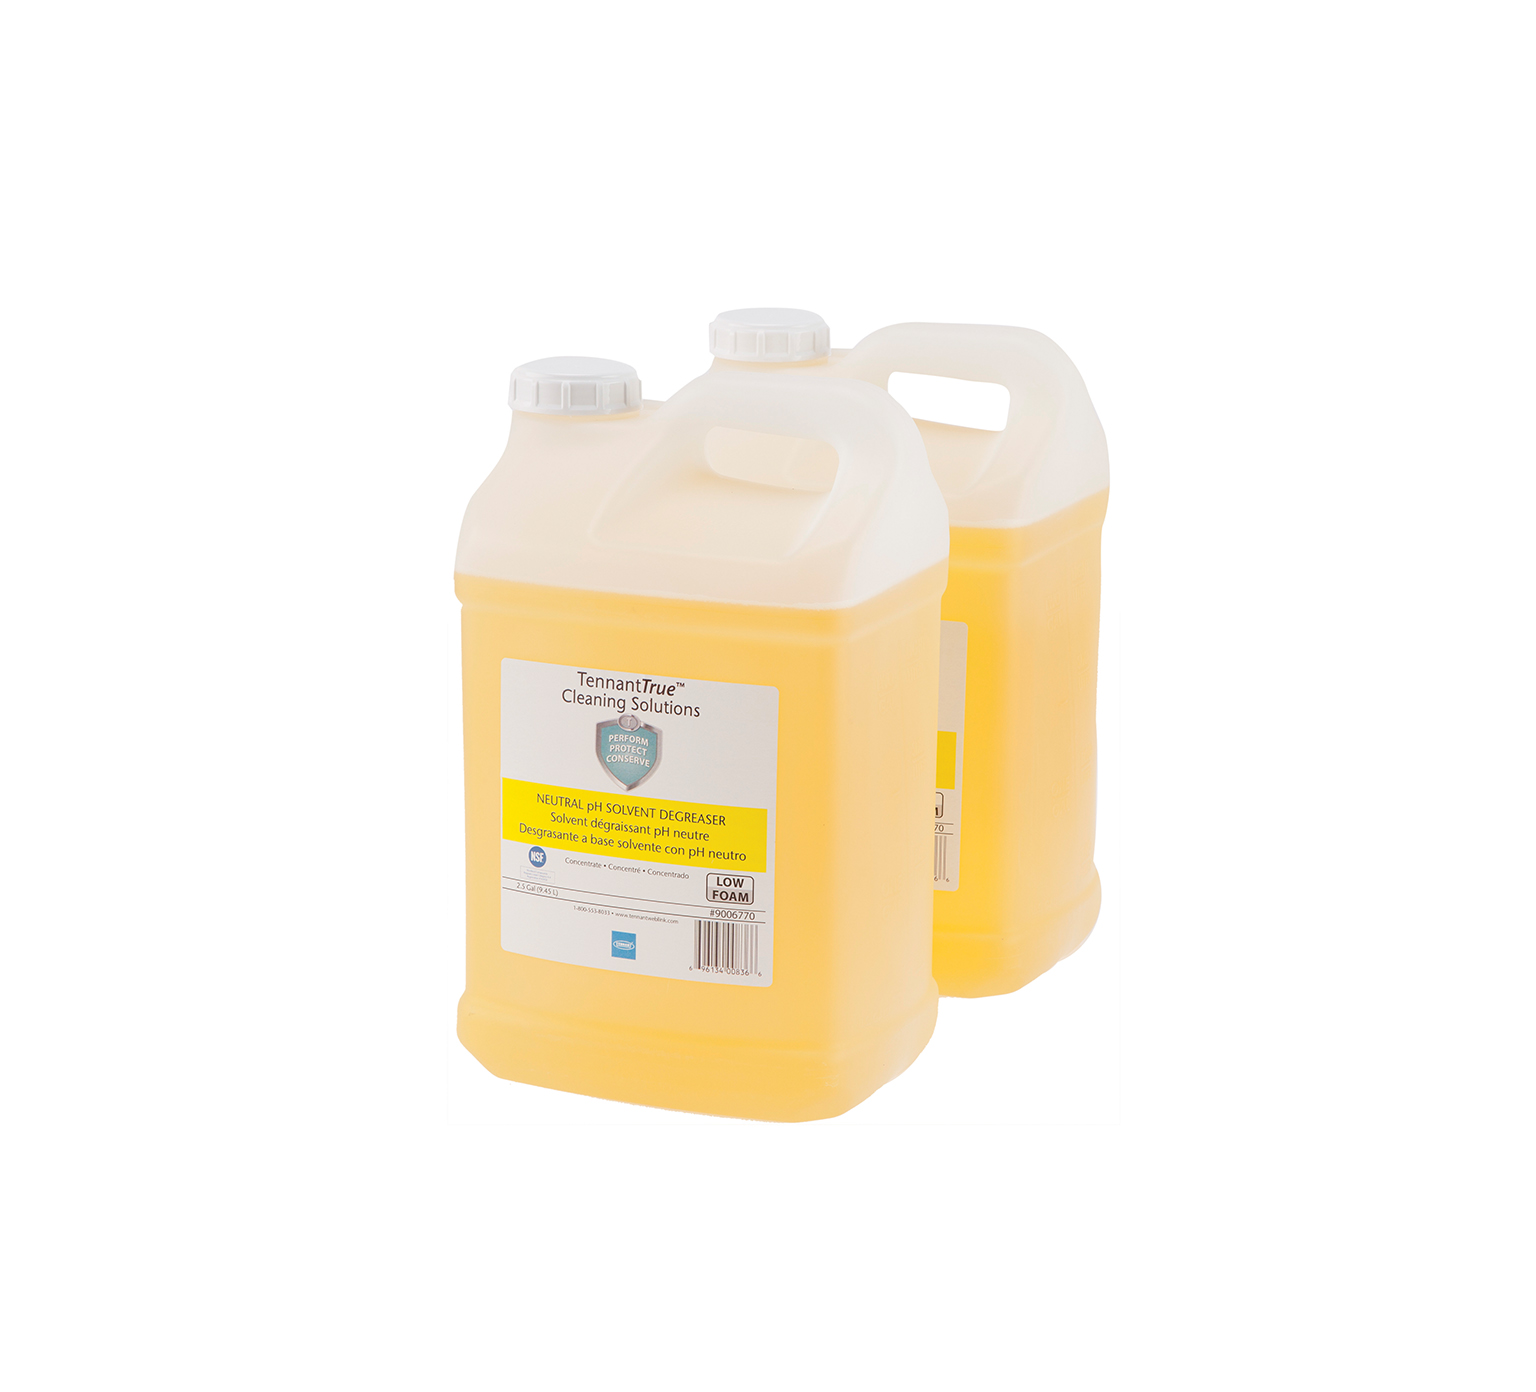 9006770 Yellow Neutral pH Solvent Degreaser – (2) 2.5 gallon alt 1